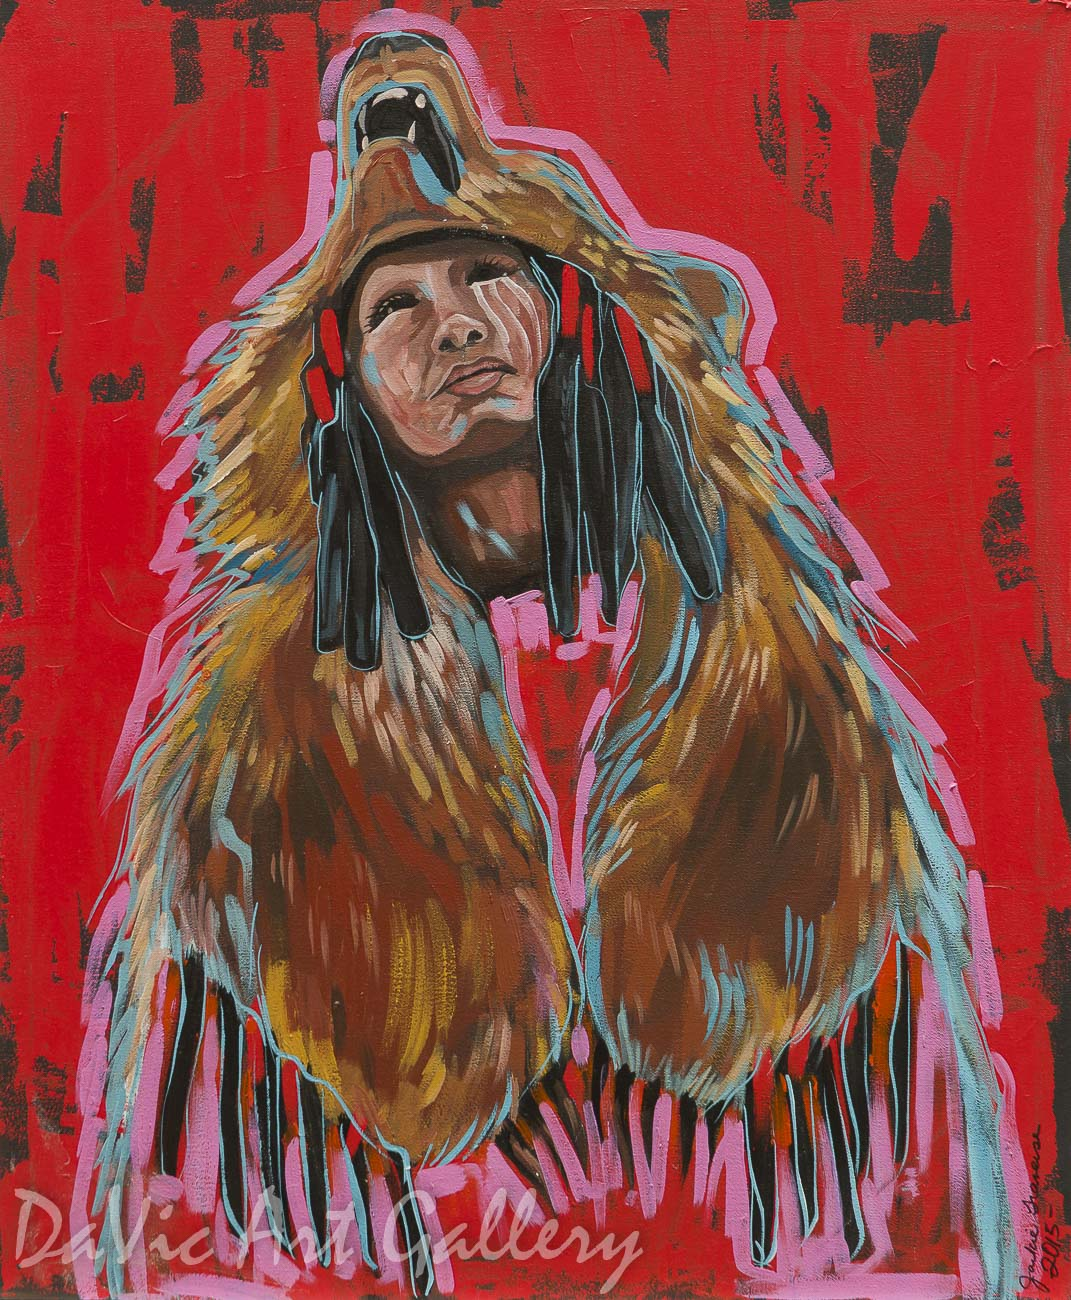 Bear Dancer by First Nations Anishinaabe artist Jackie Traverse